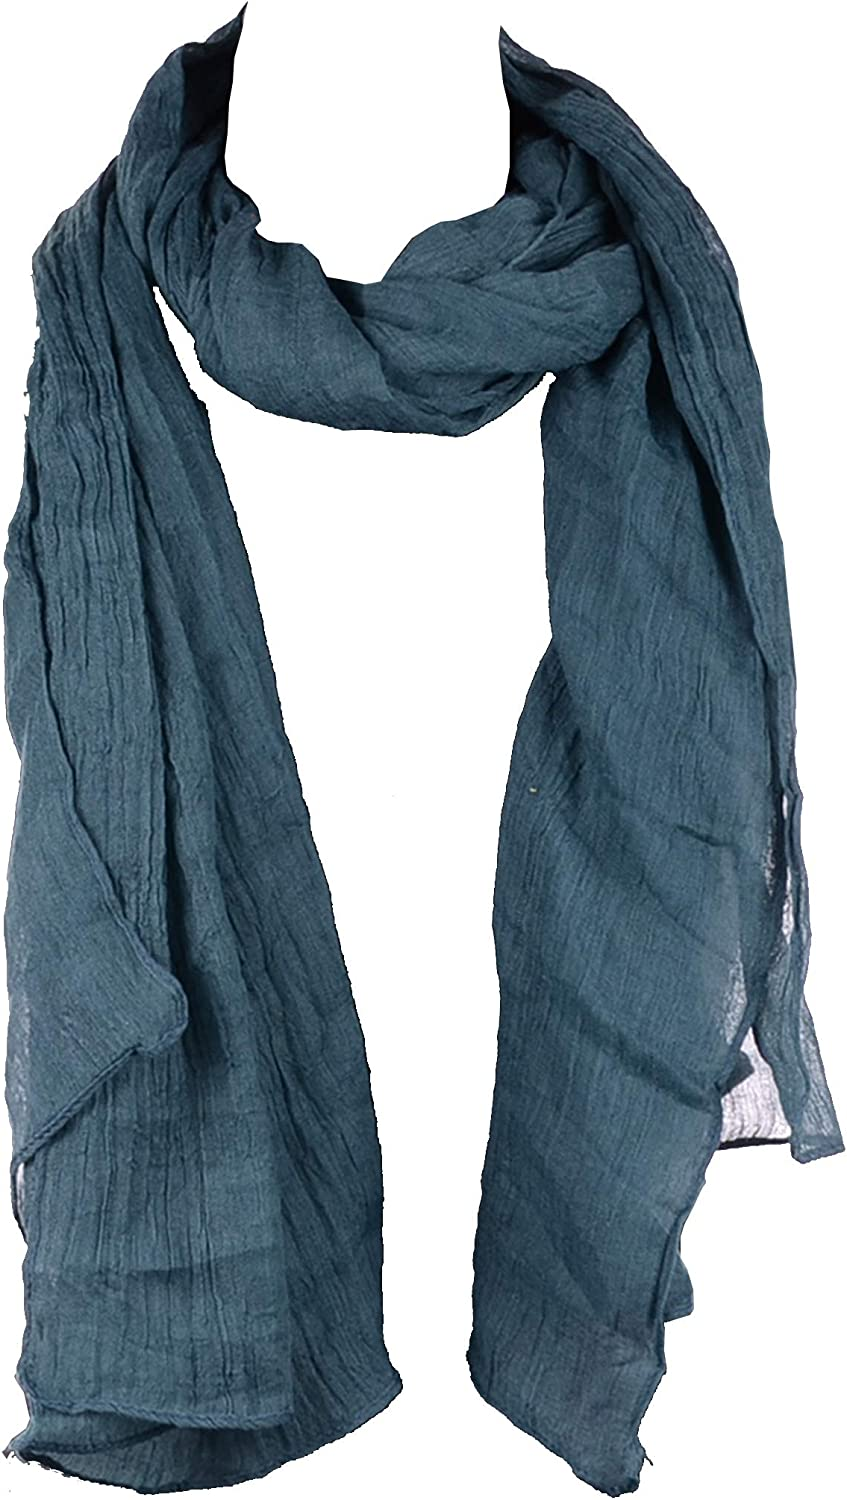 BYOS Womens Airy Crinkled Soft Lightweight Oversized Shawl Scarf in Solid Color